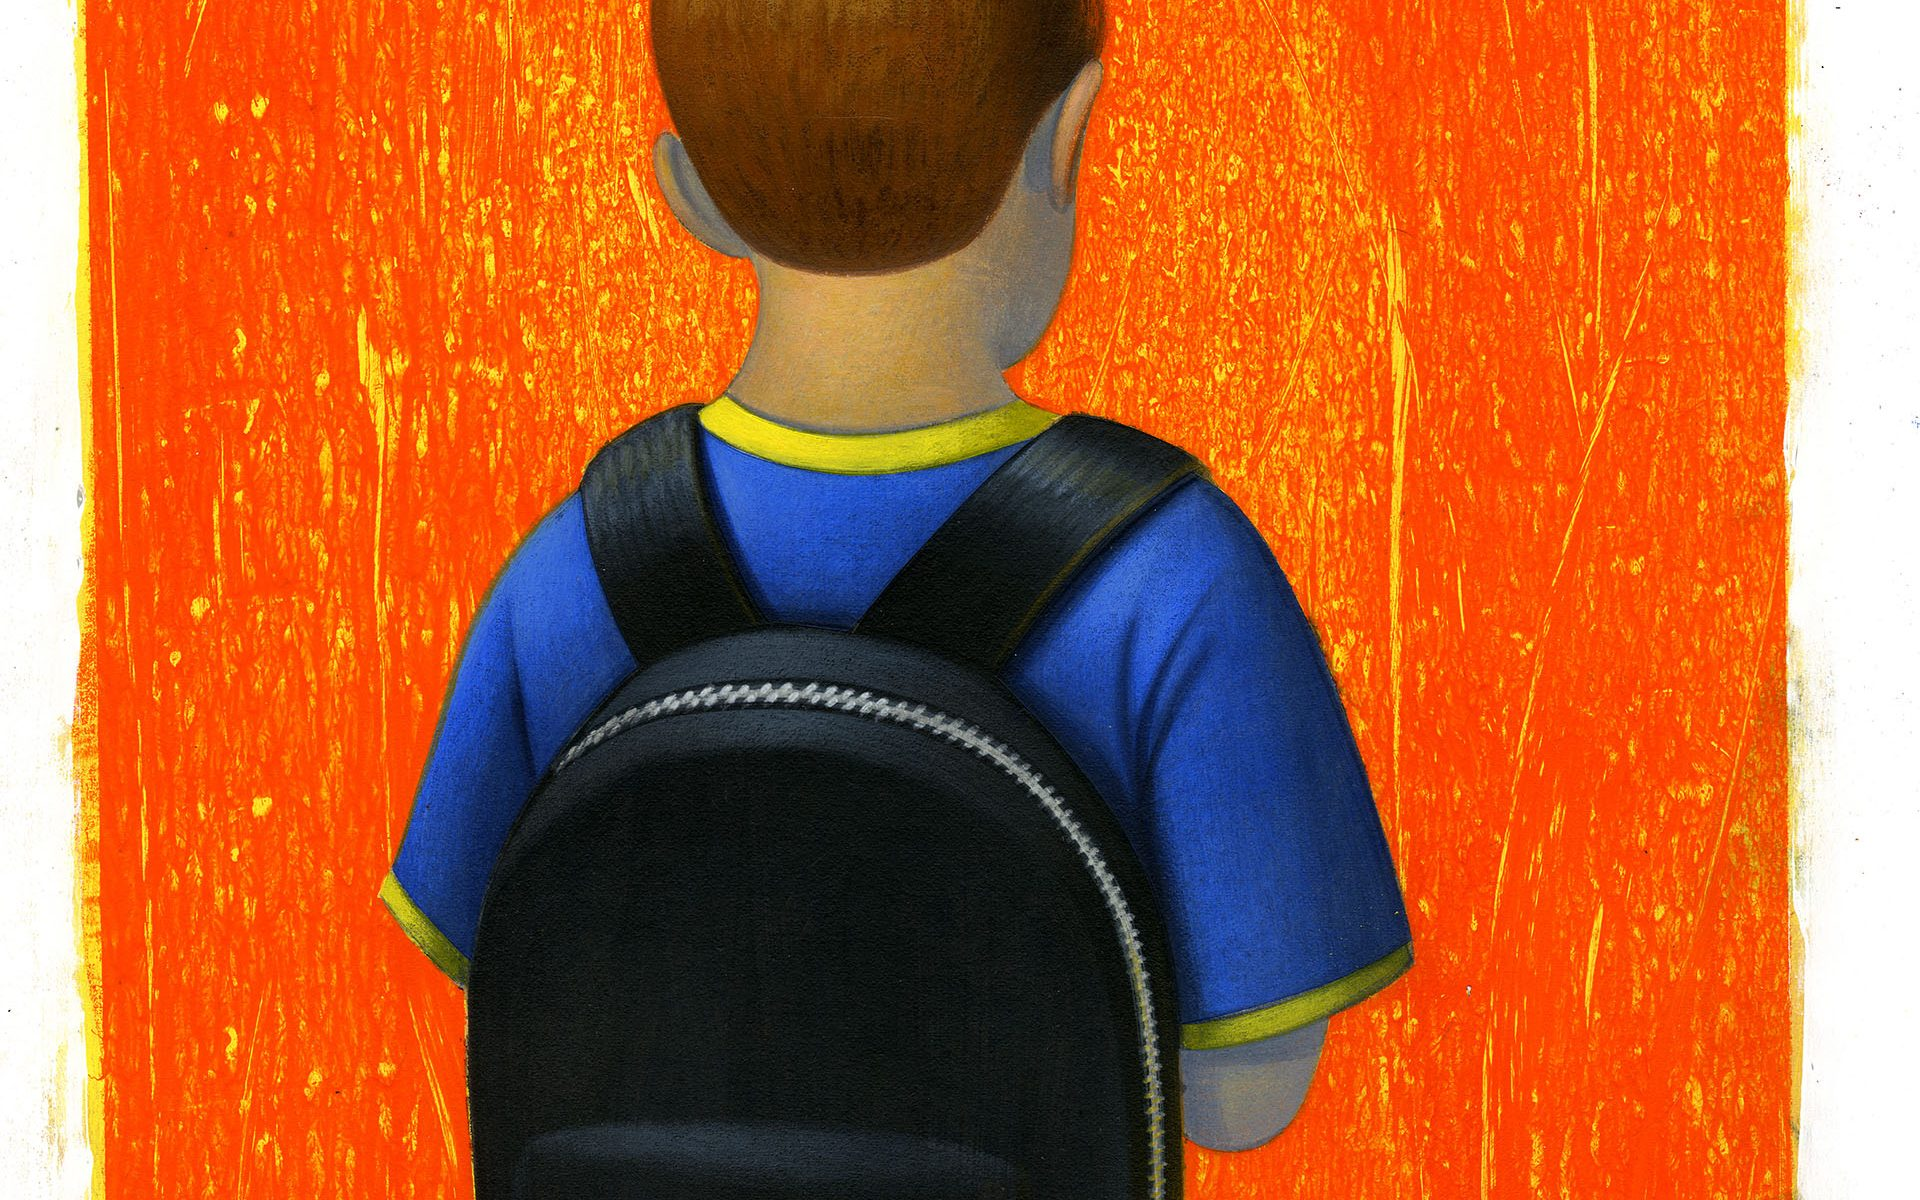 illustration of young boy with backpack facing away, against orange background